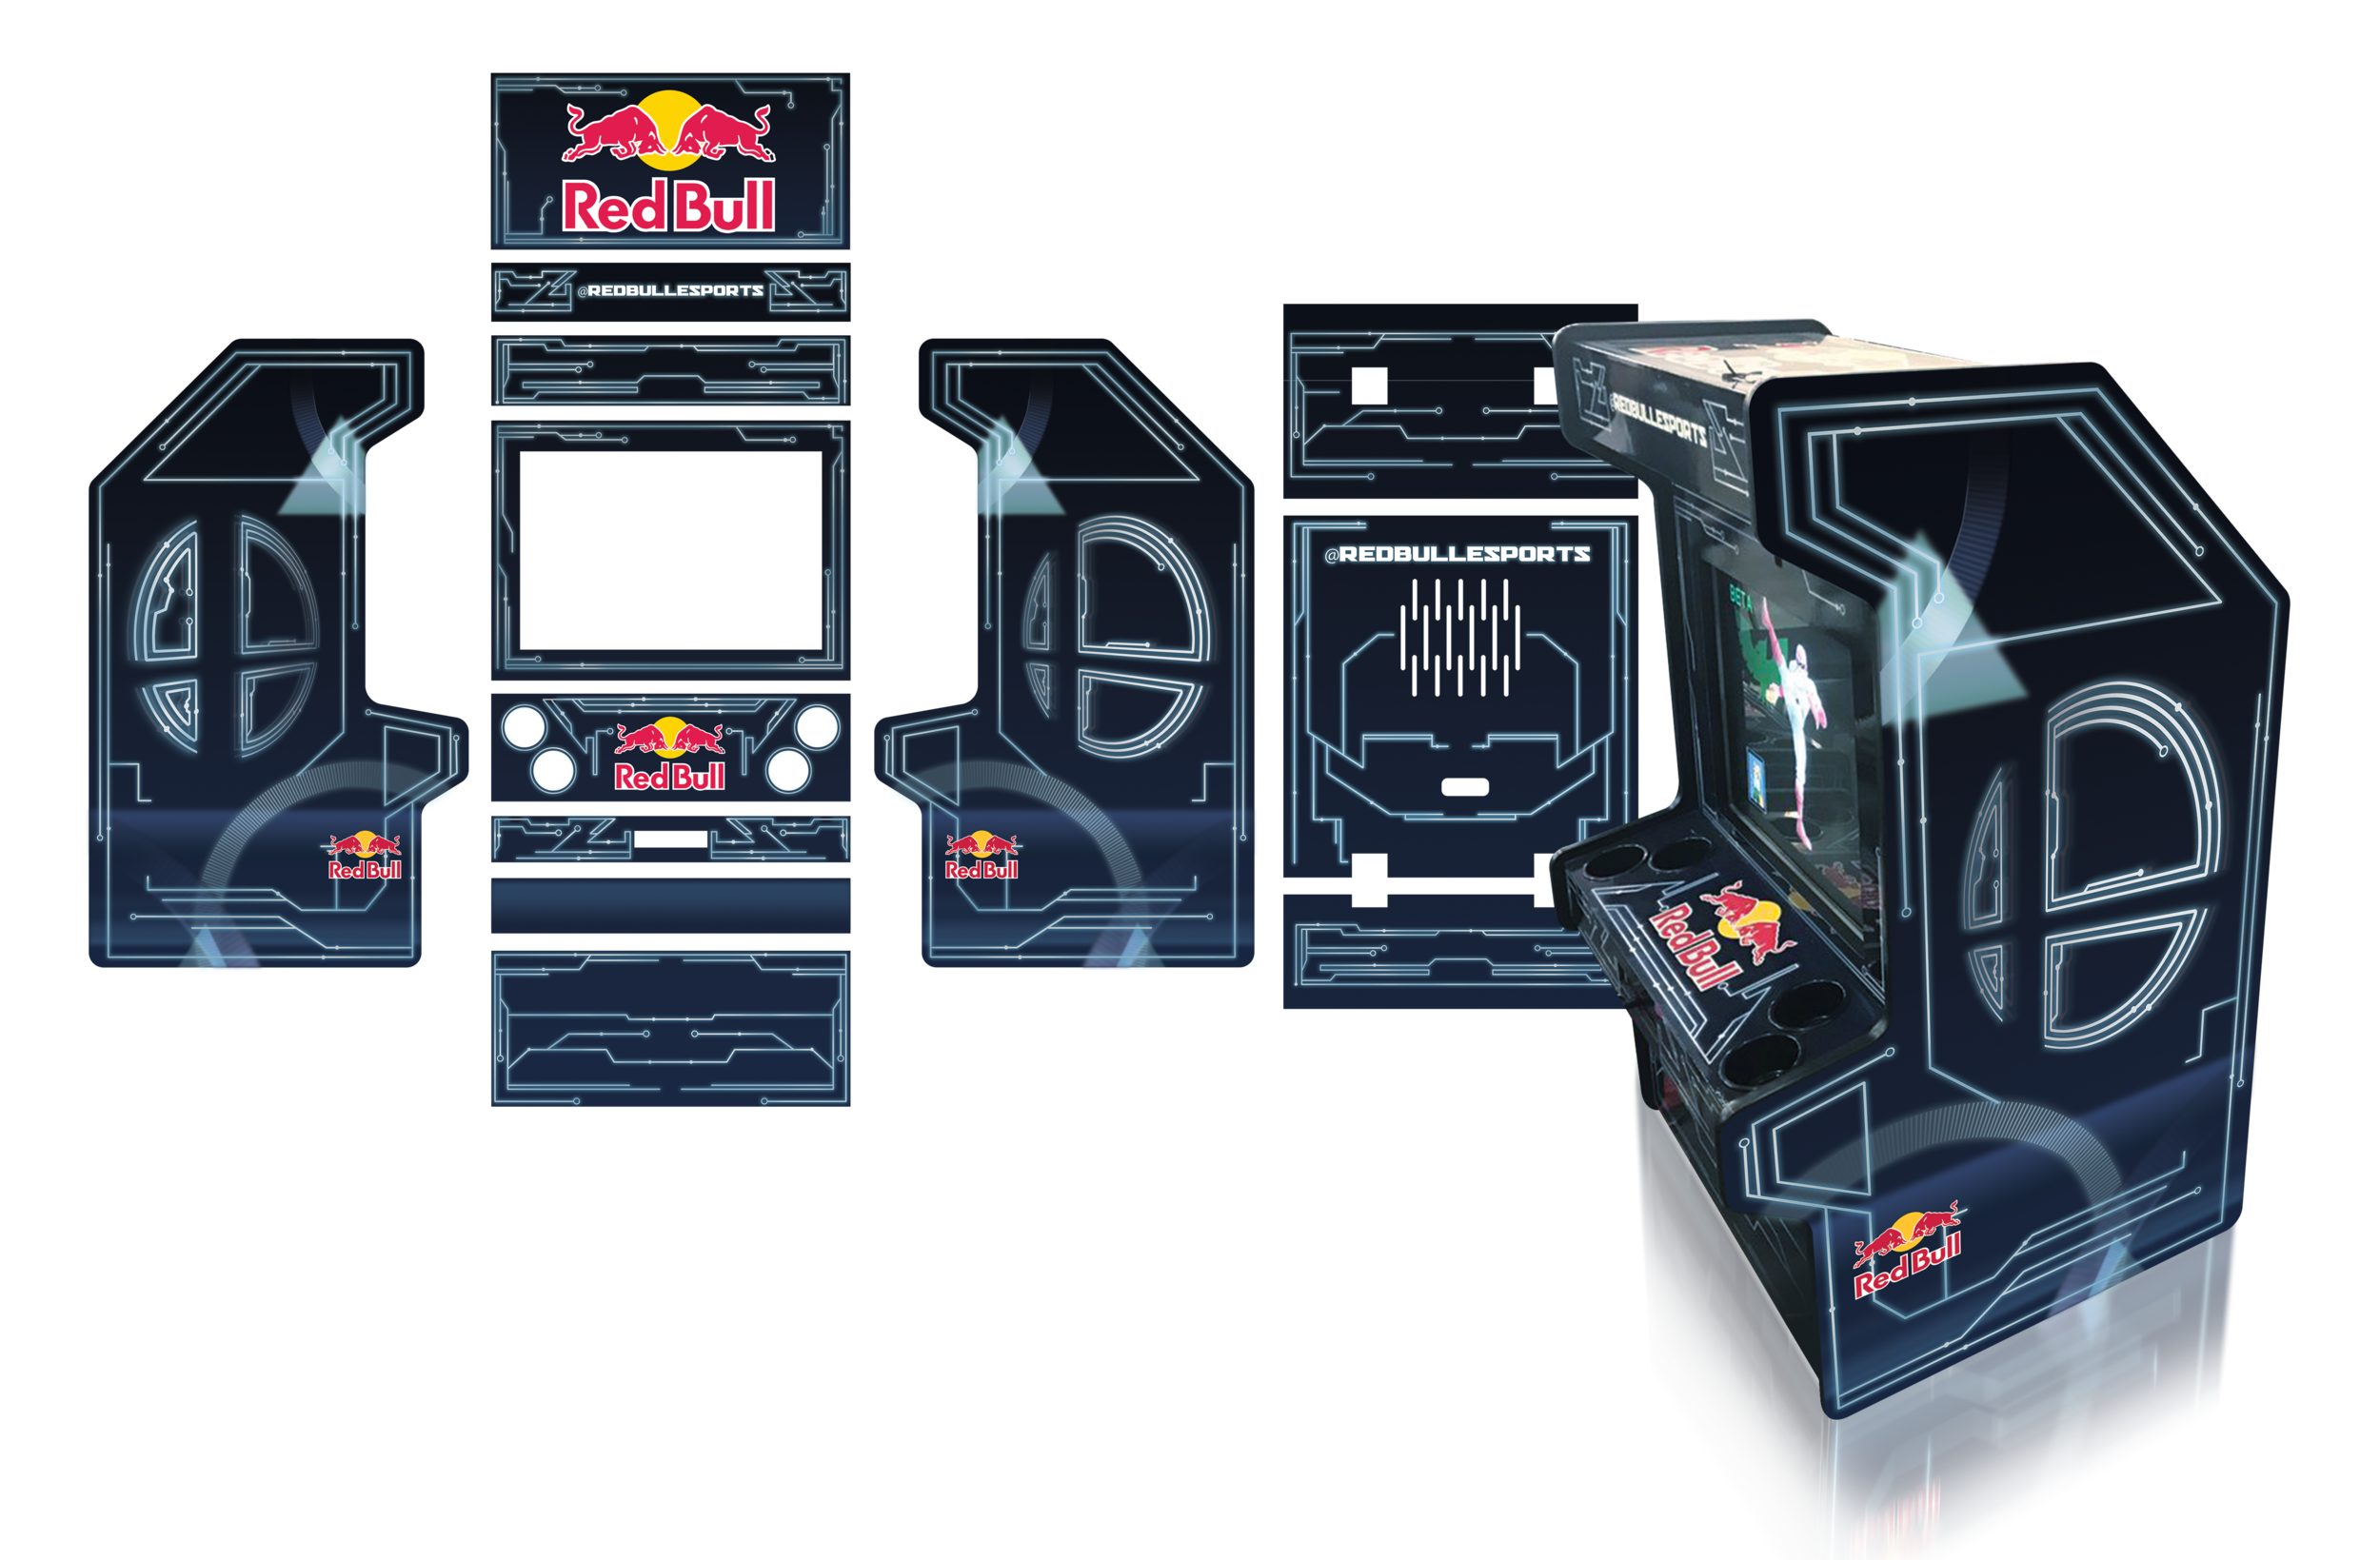 Redbull_Cabinet.png